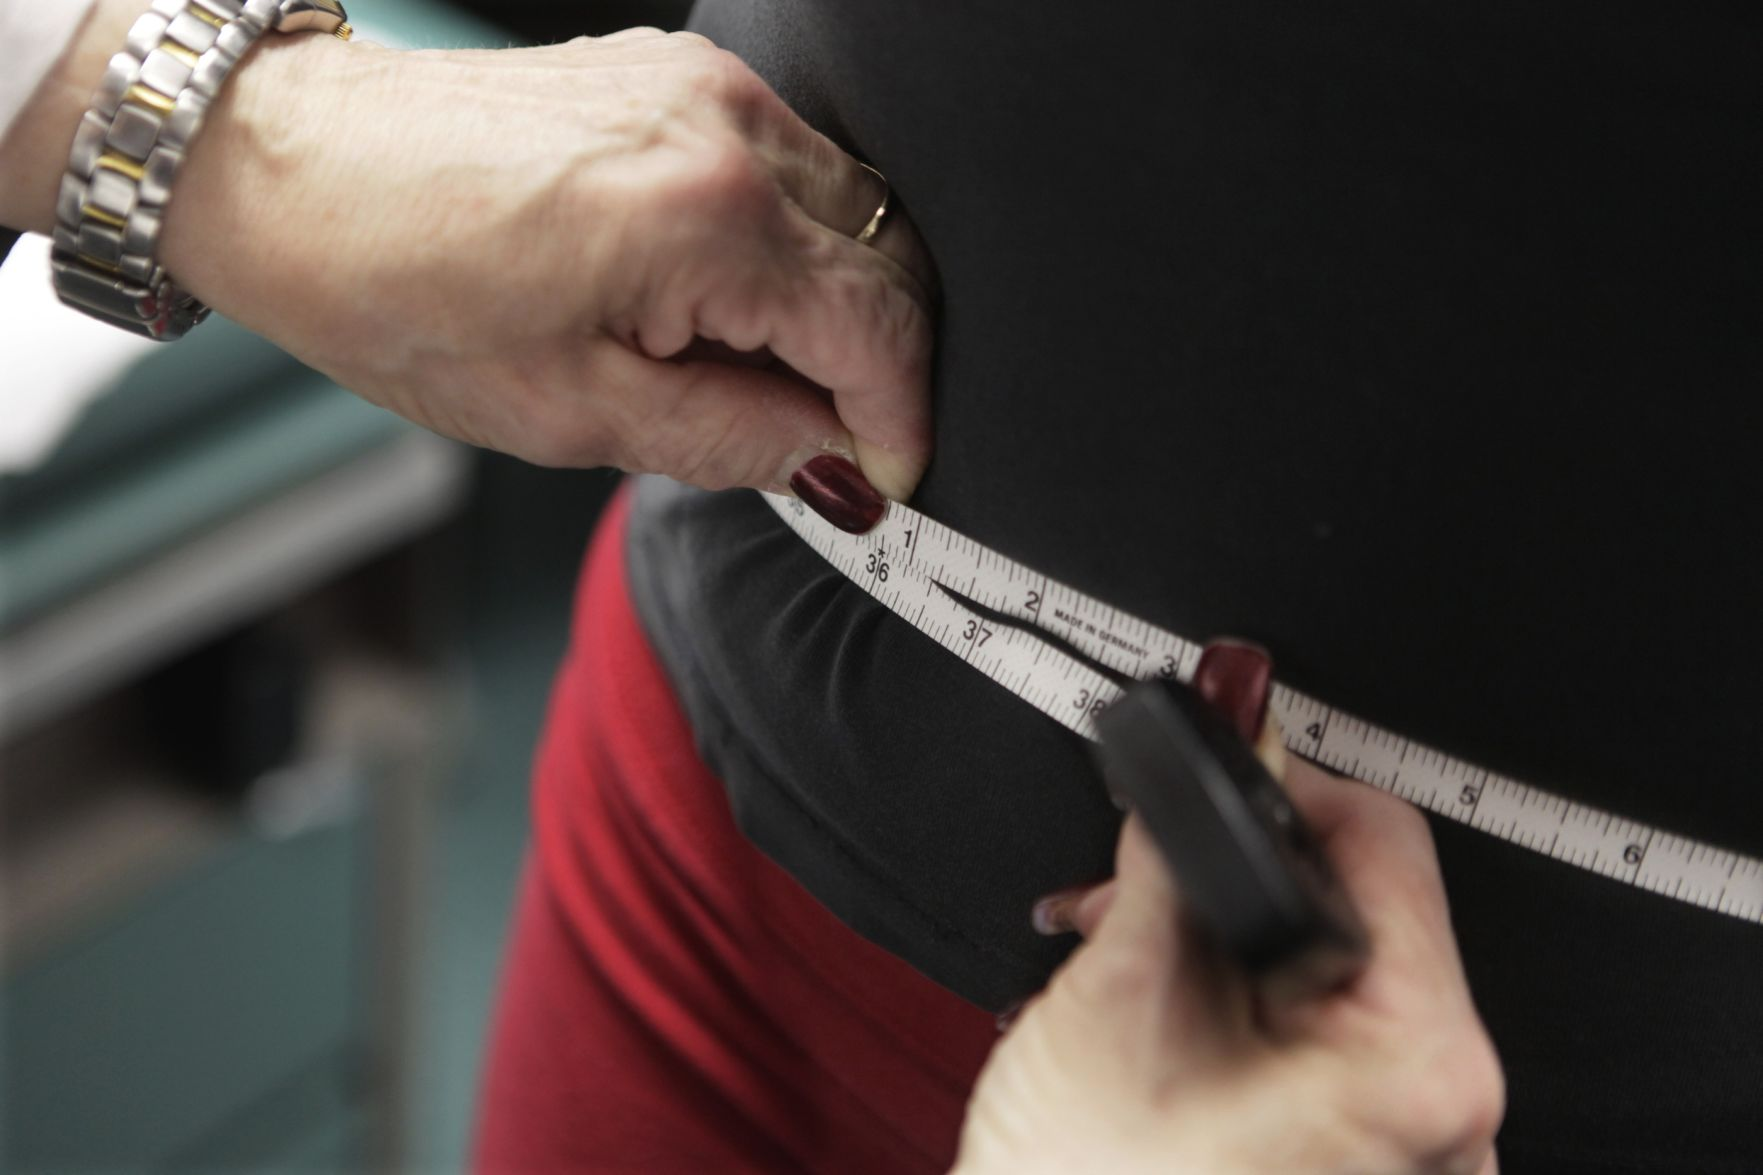 New obesity report shows how SC stacks up to other states